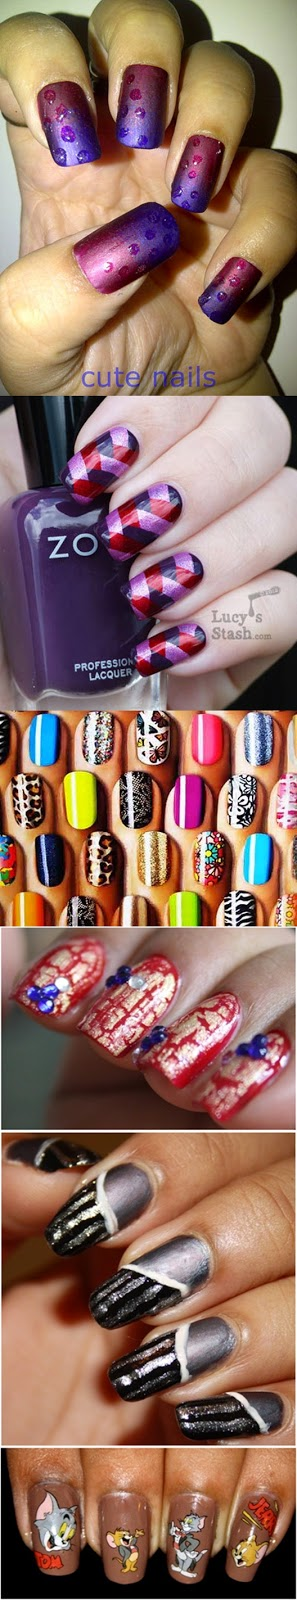 50 Amazing Nail Art Designs For Beginners With Styling Tips